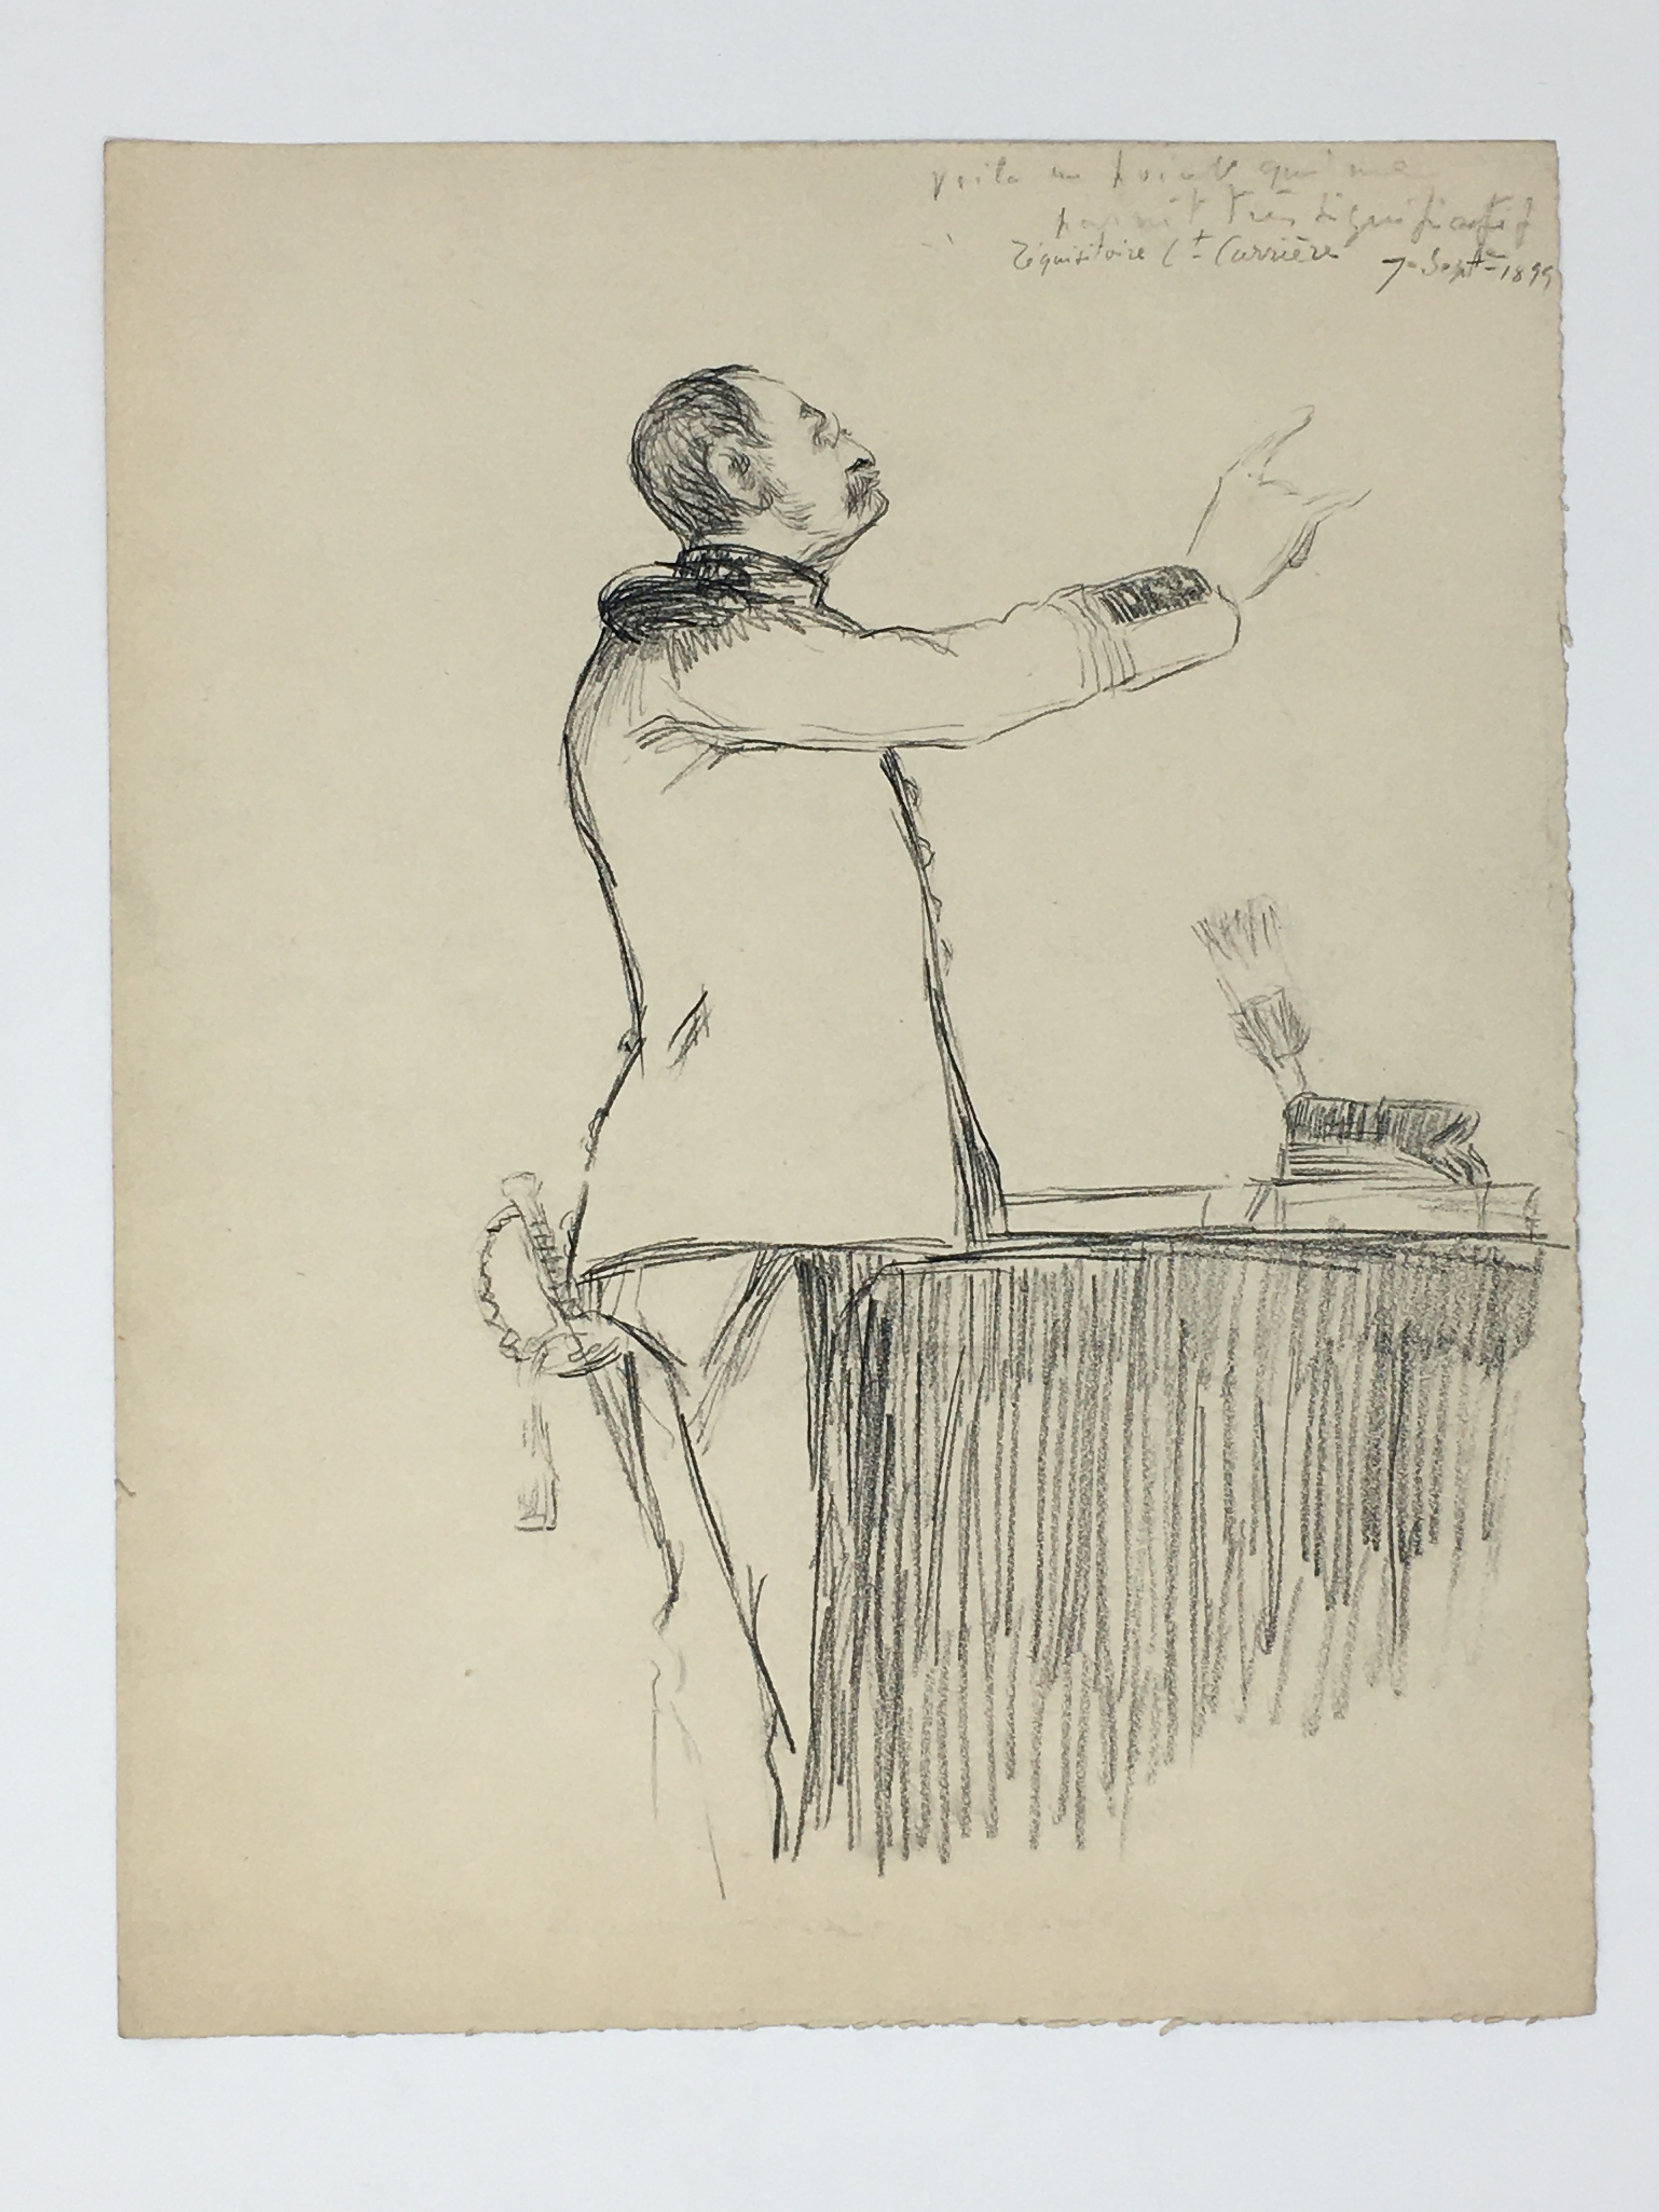 J'Accuse Newspaper, Emile Zola Quote, Signed Dreyfus Portrait, Rare Trial Drawings & Schwartzkoppen - Image 54 of 74